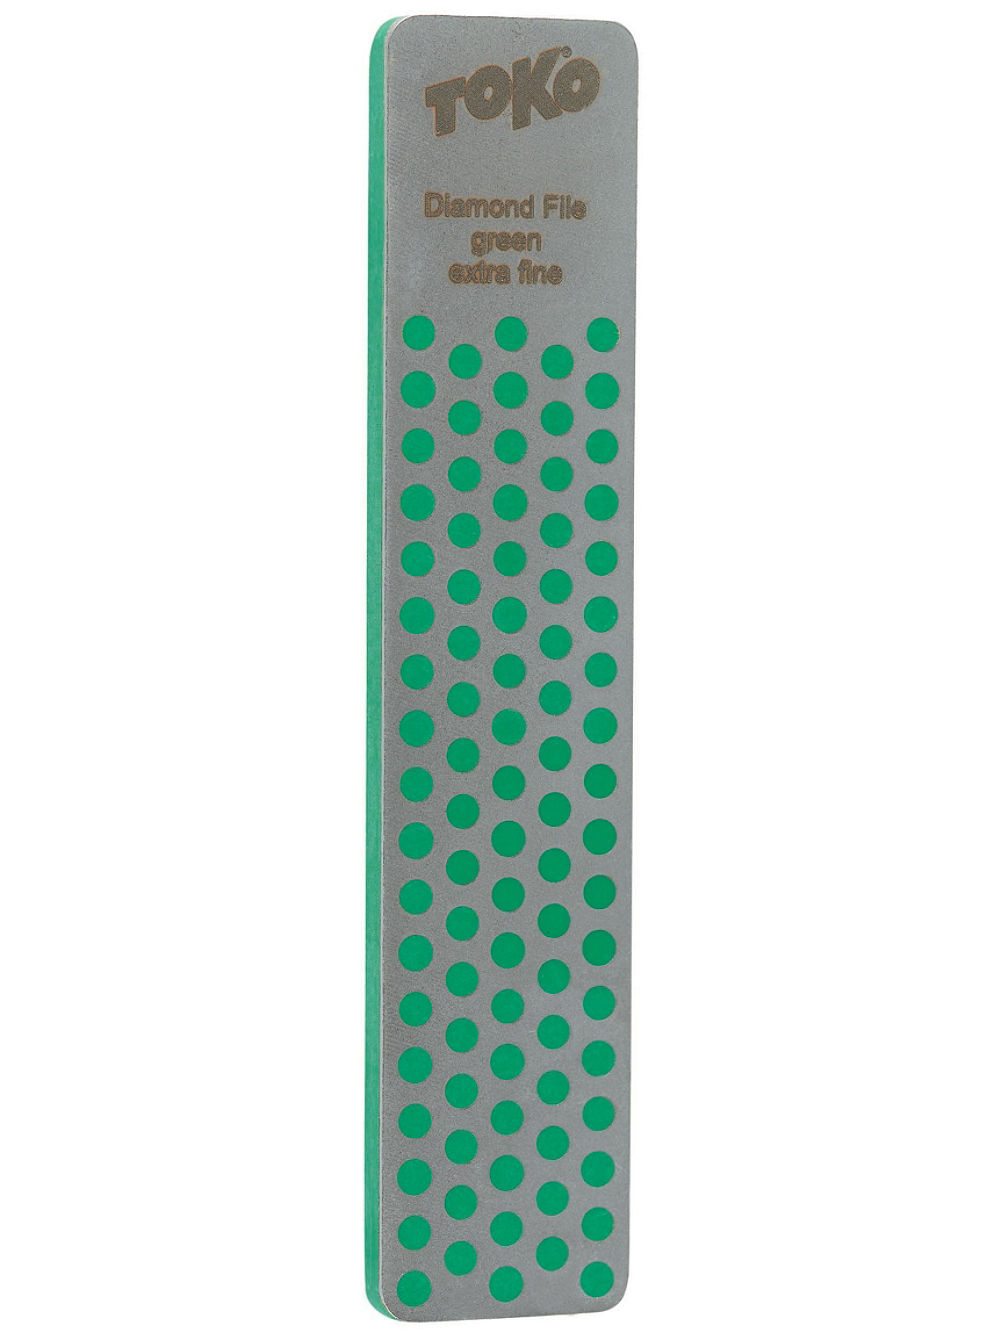 toko-dmt-diamond-file-green-extra-fine